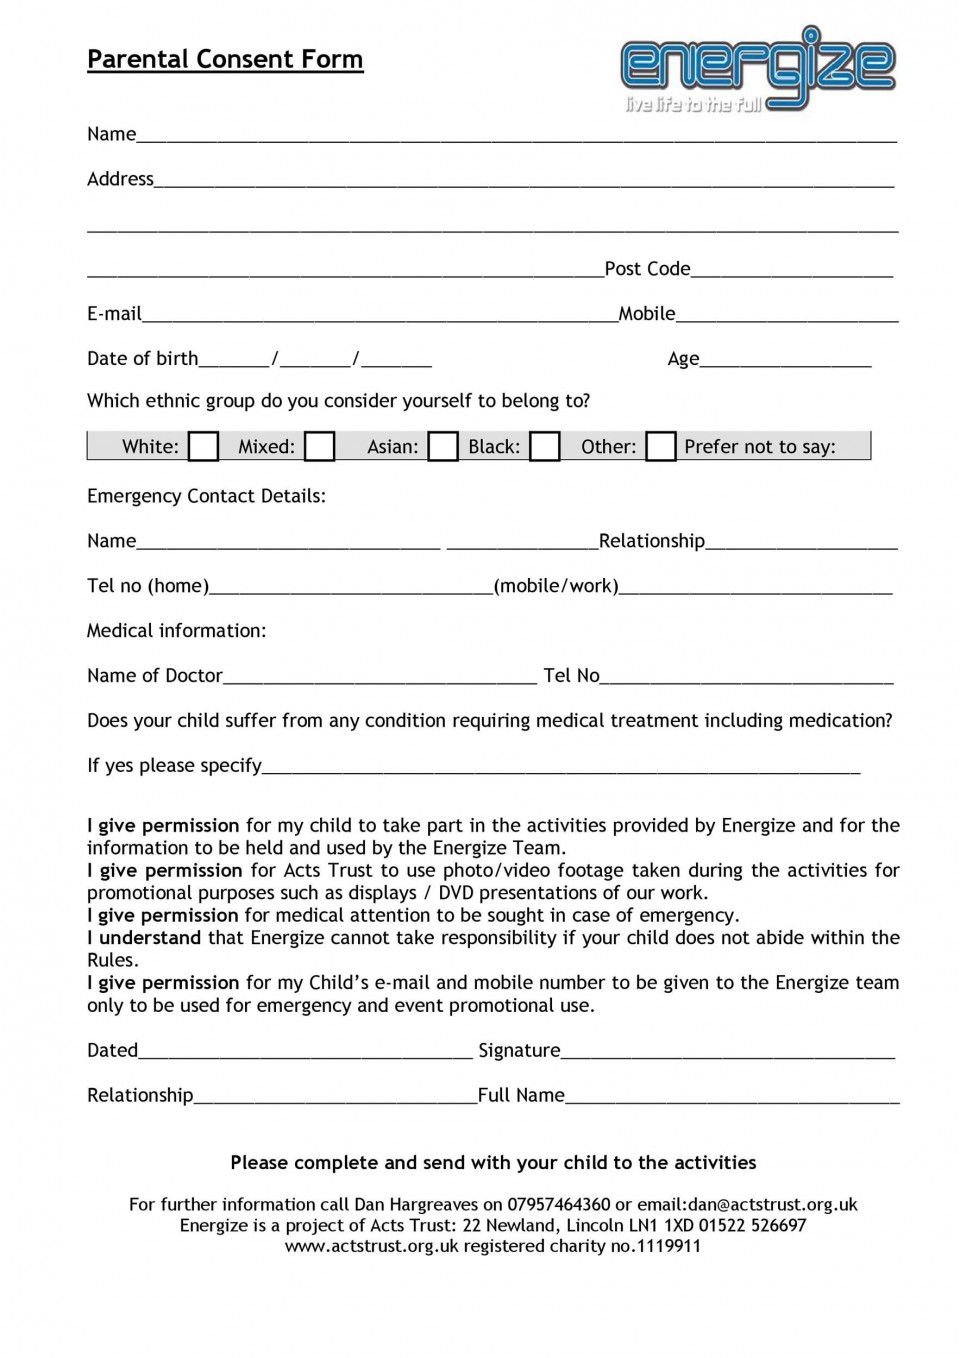 007 Archaicawful Free Printable Medical Consent Form Template Image 960